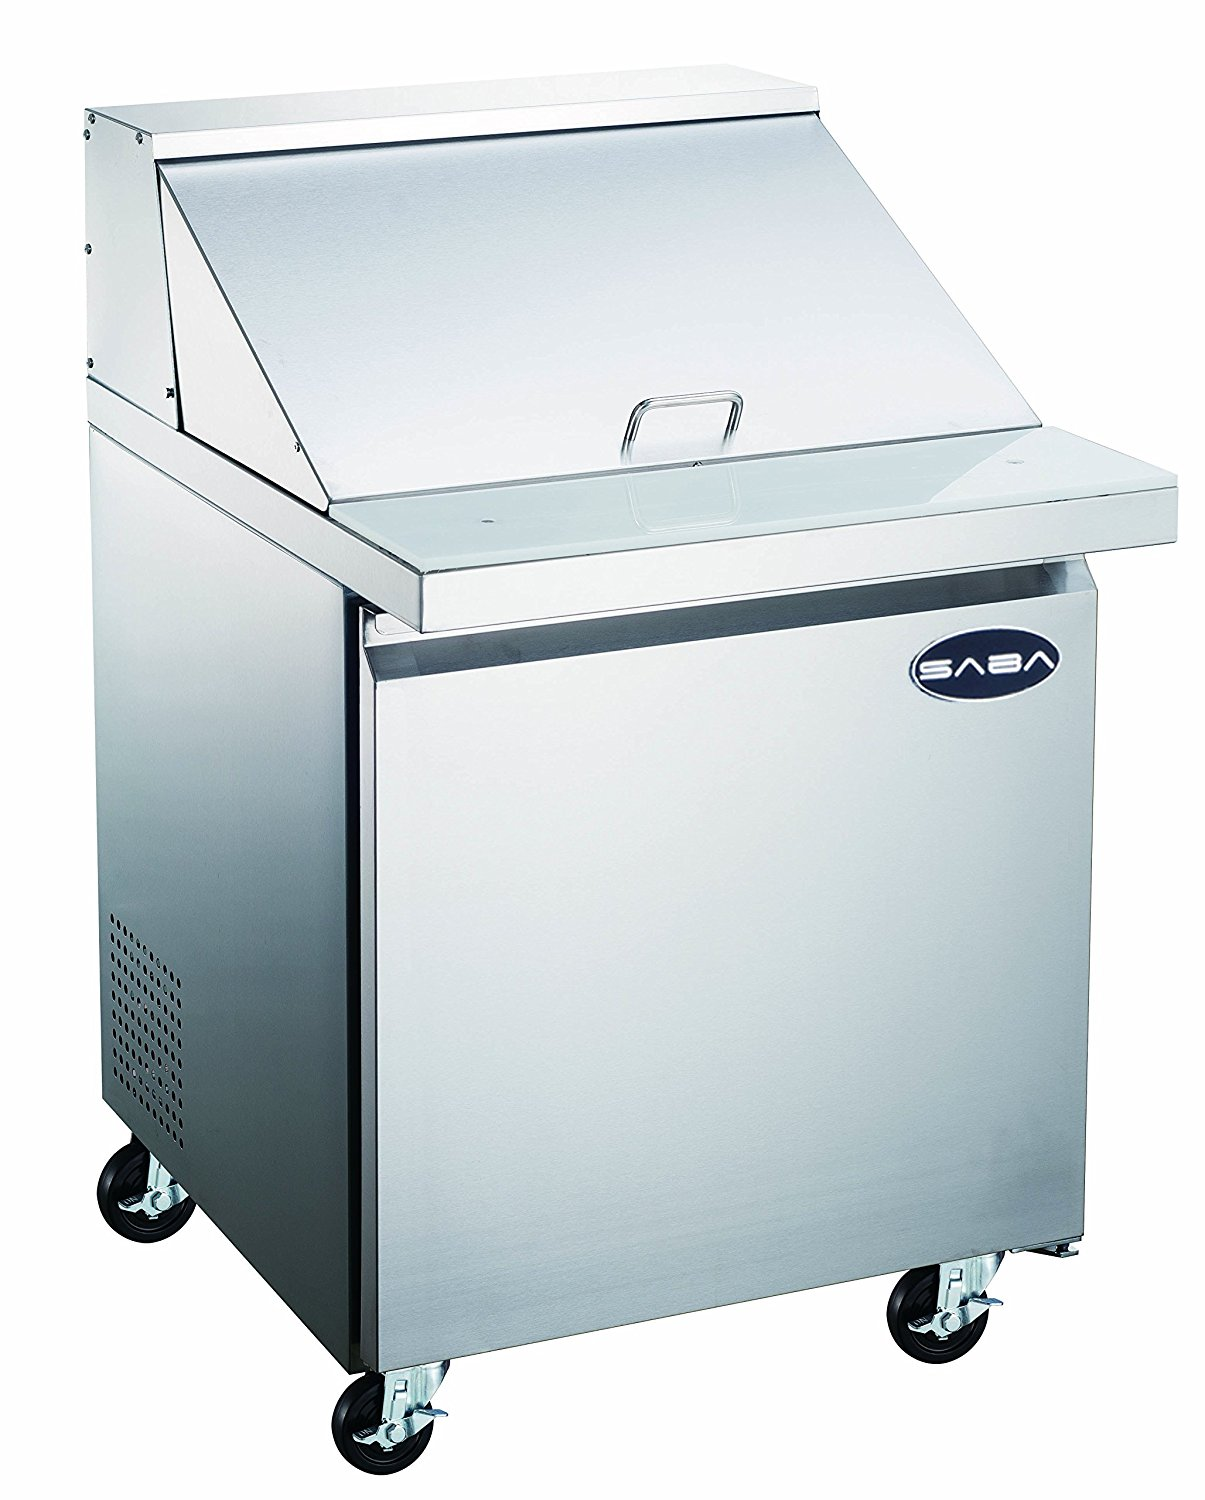 Heavy Duty Commercial Stainless Steel Mega Prep Table Refrigerator Cooler 1 Door 27""